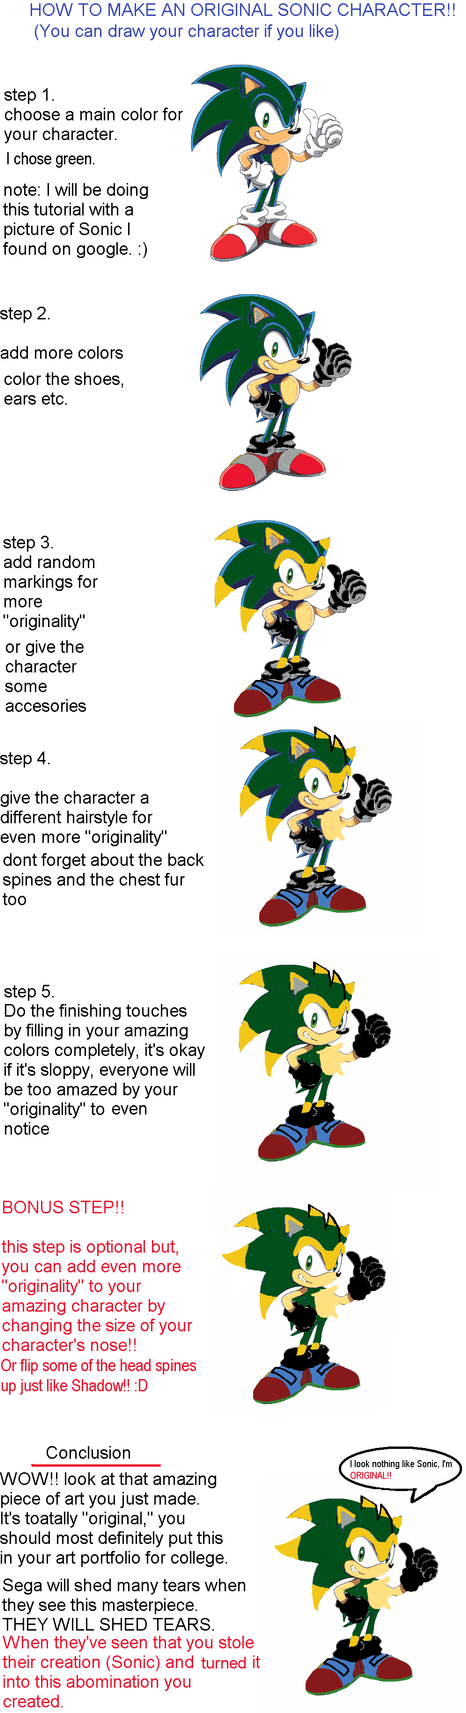 HOW TO MAKE A SONIC CHARACTER by JonathanTheSmex